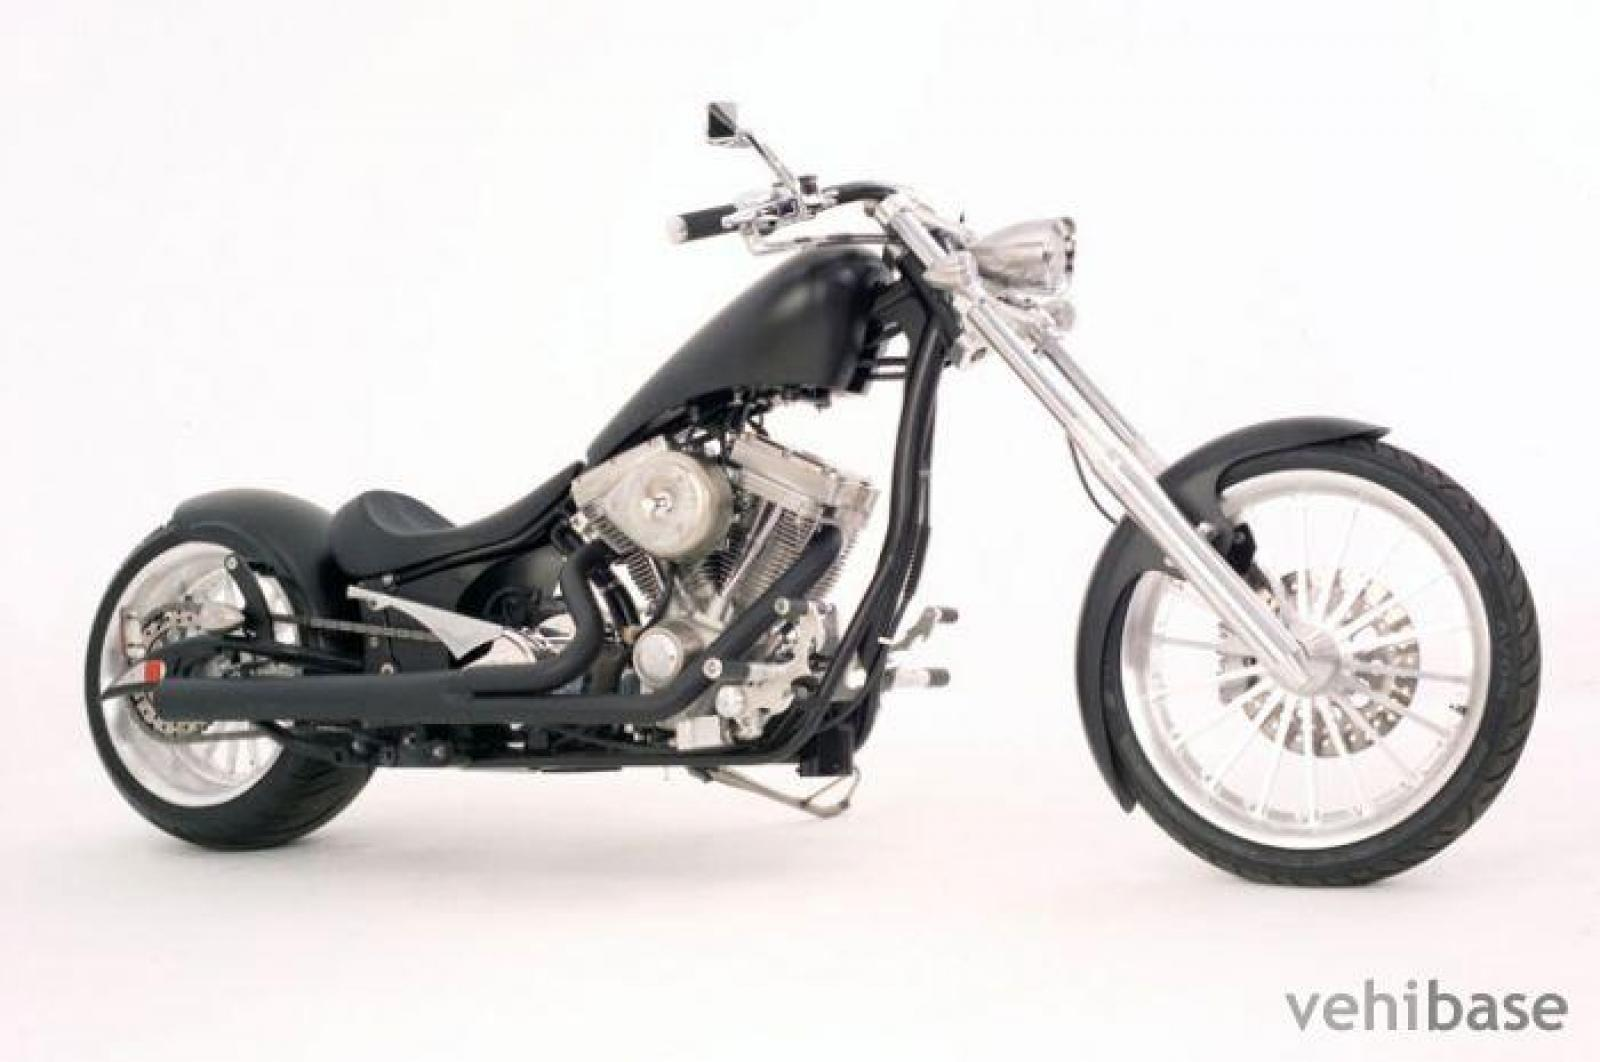 Big Bear Choppers Paradox 100 Smooth Carb images #63691